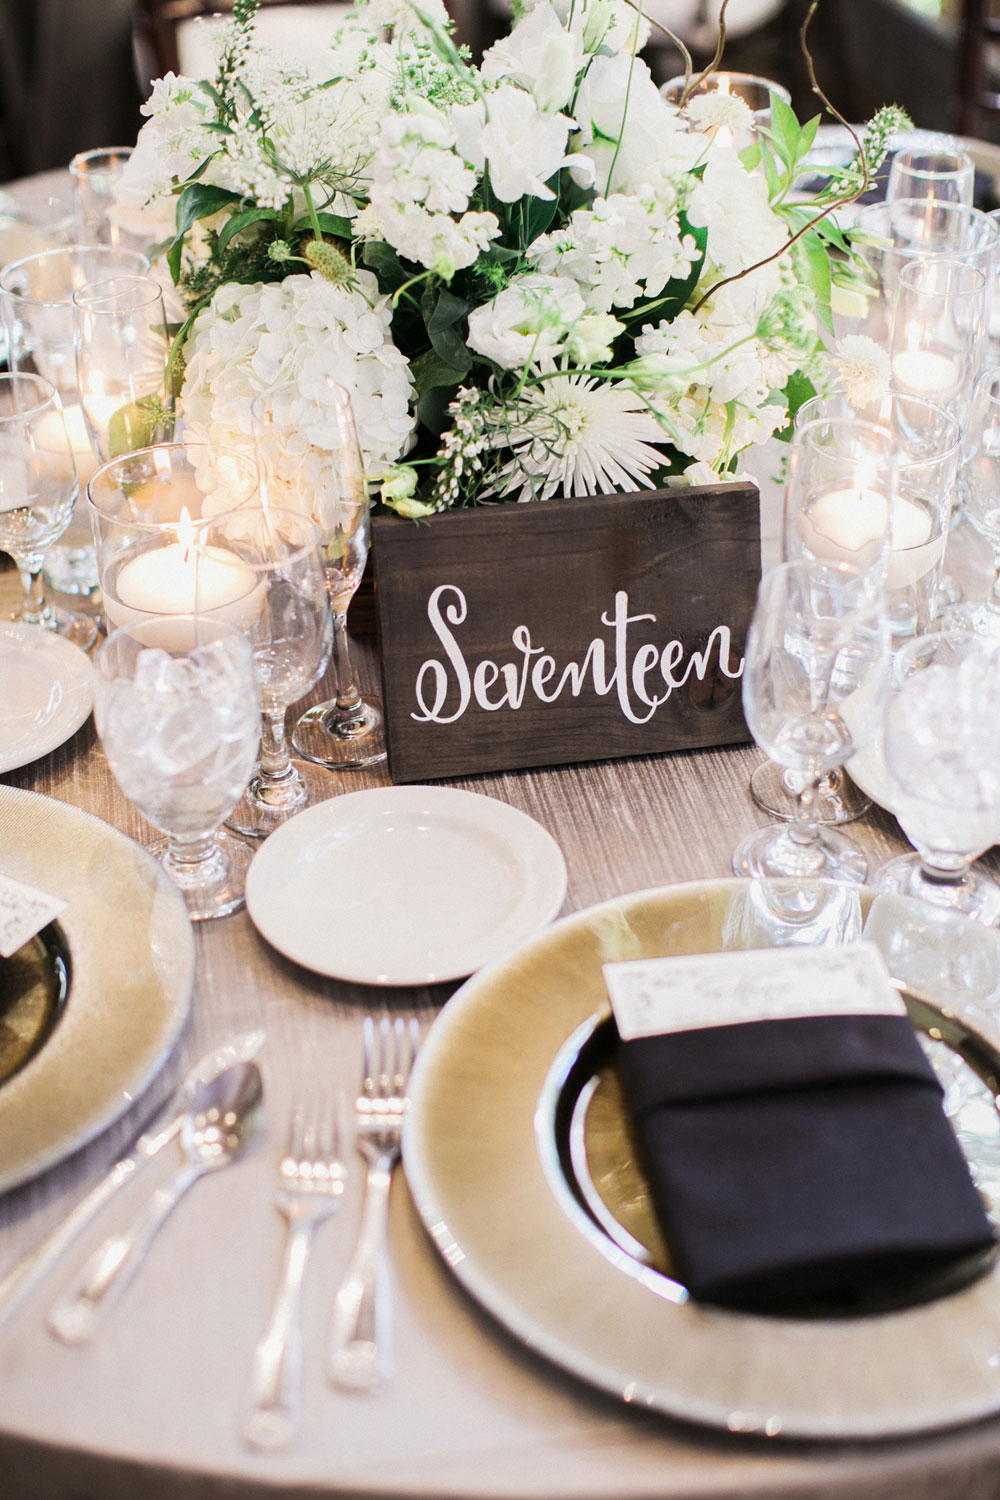 wedding reception table with table number written out with white calligraphy on wooden slab